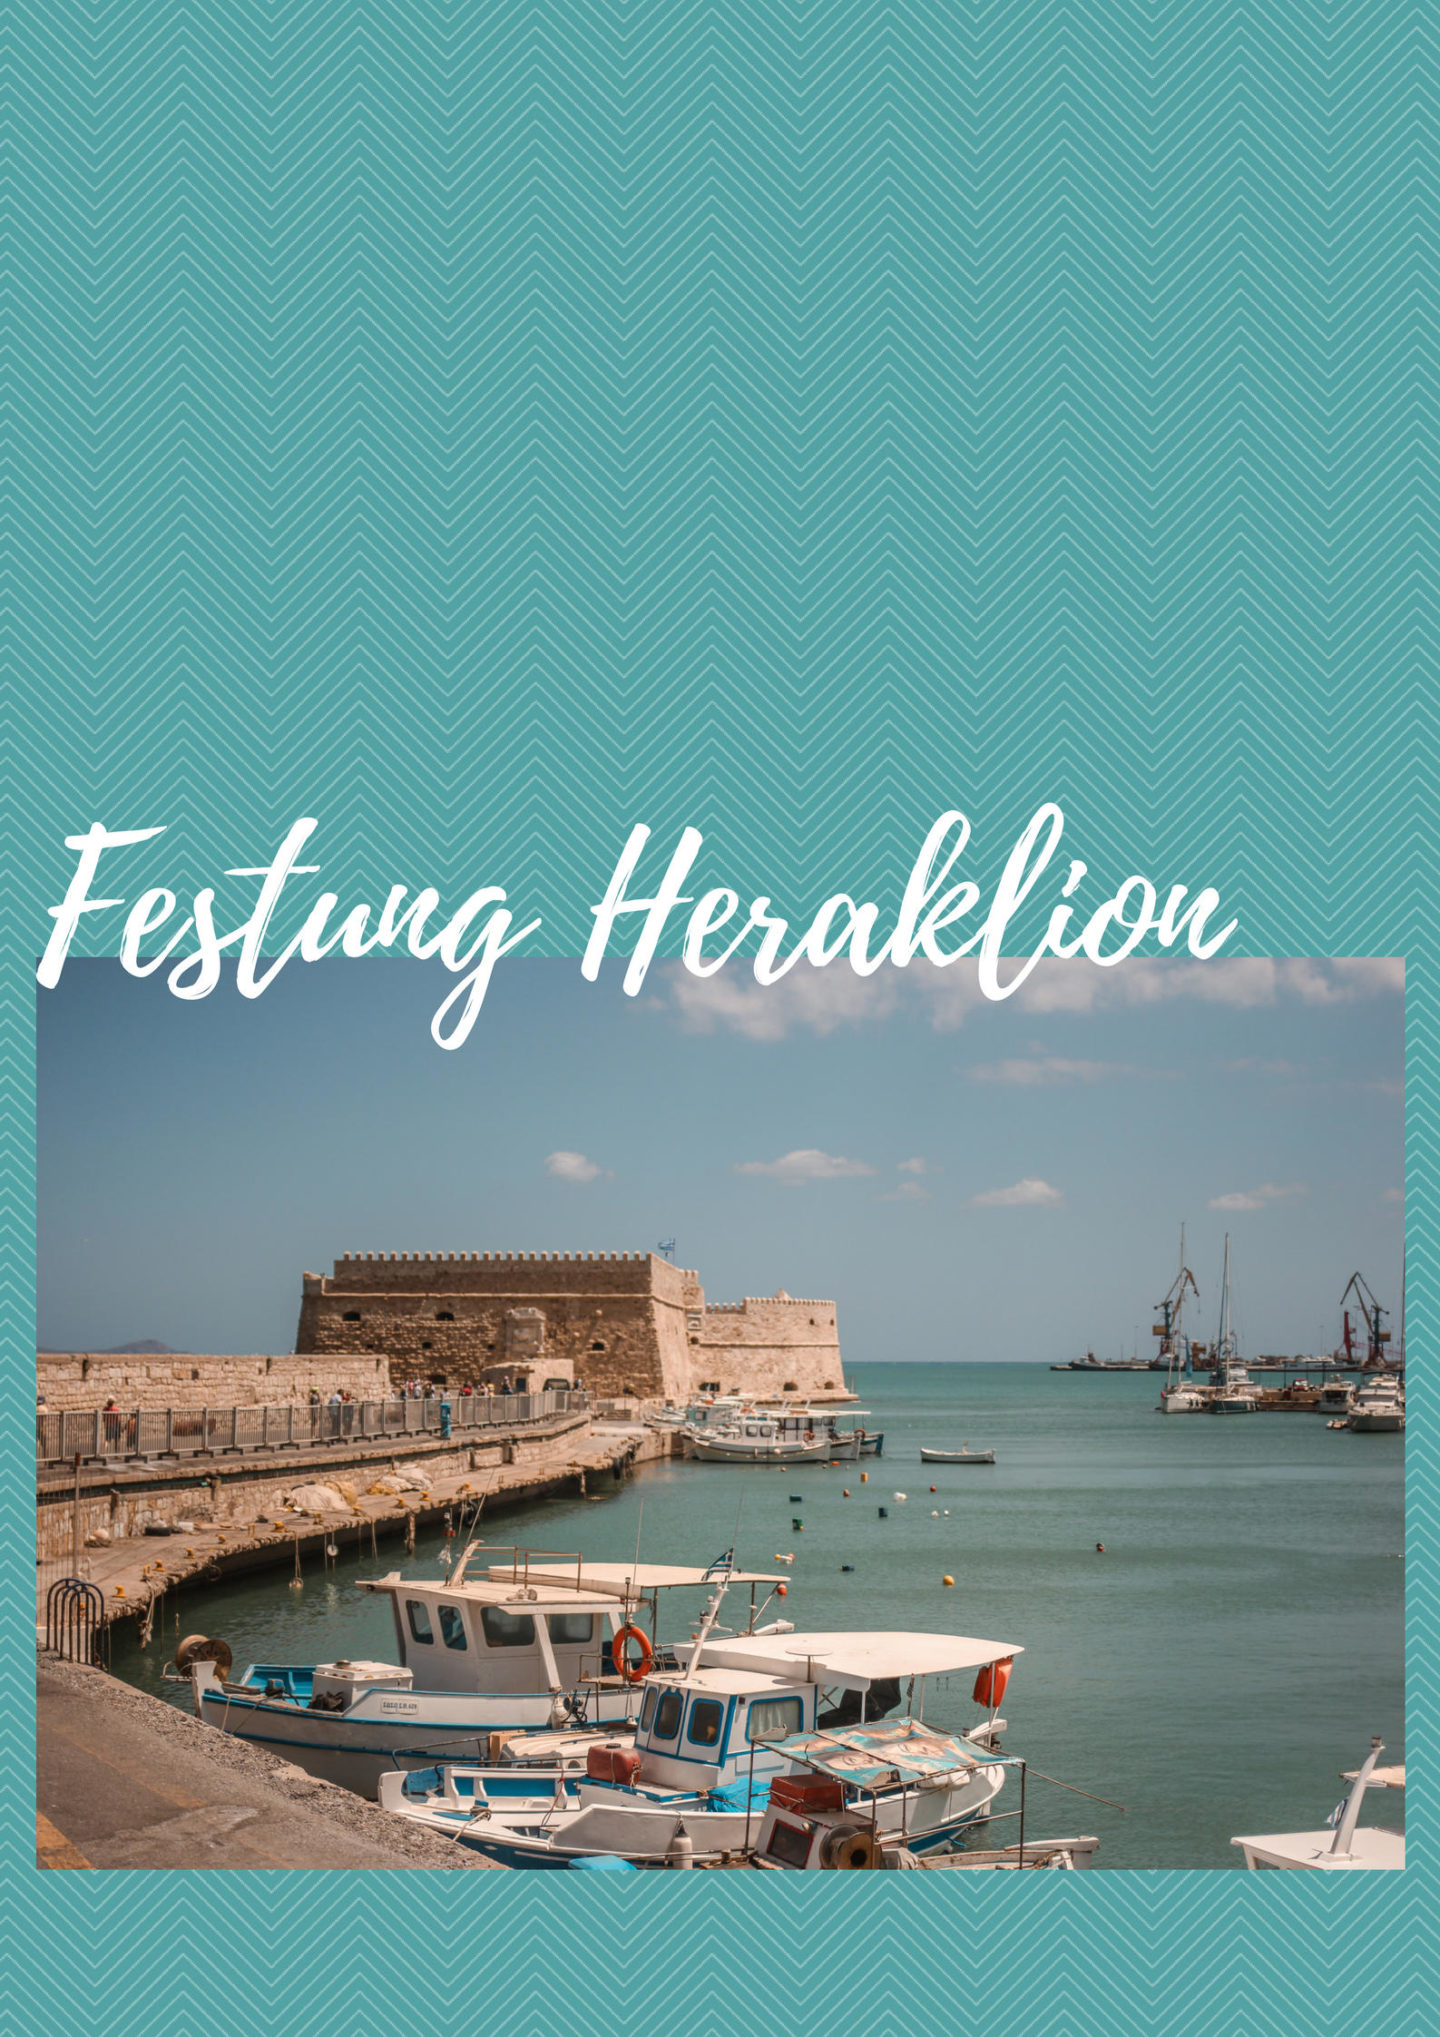 Festung Heraklion